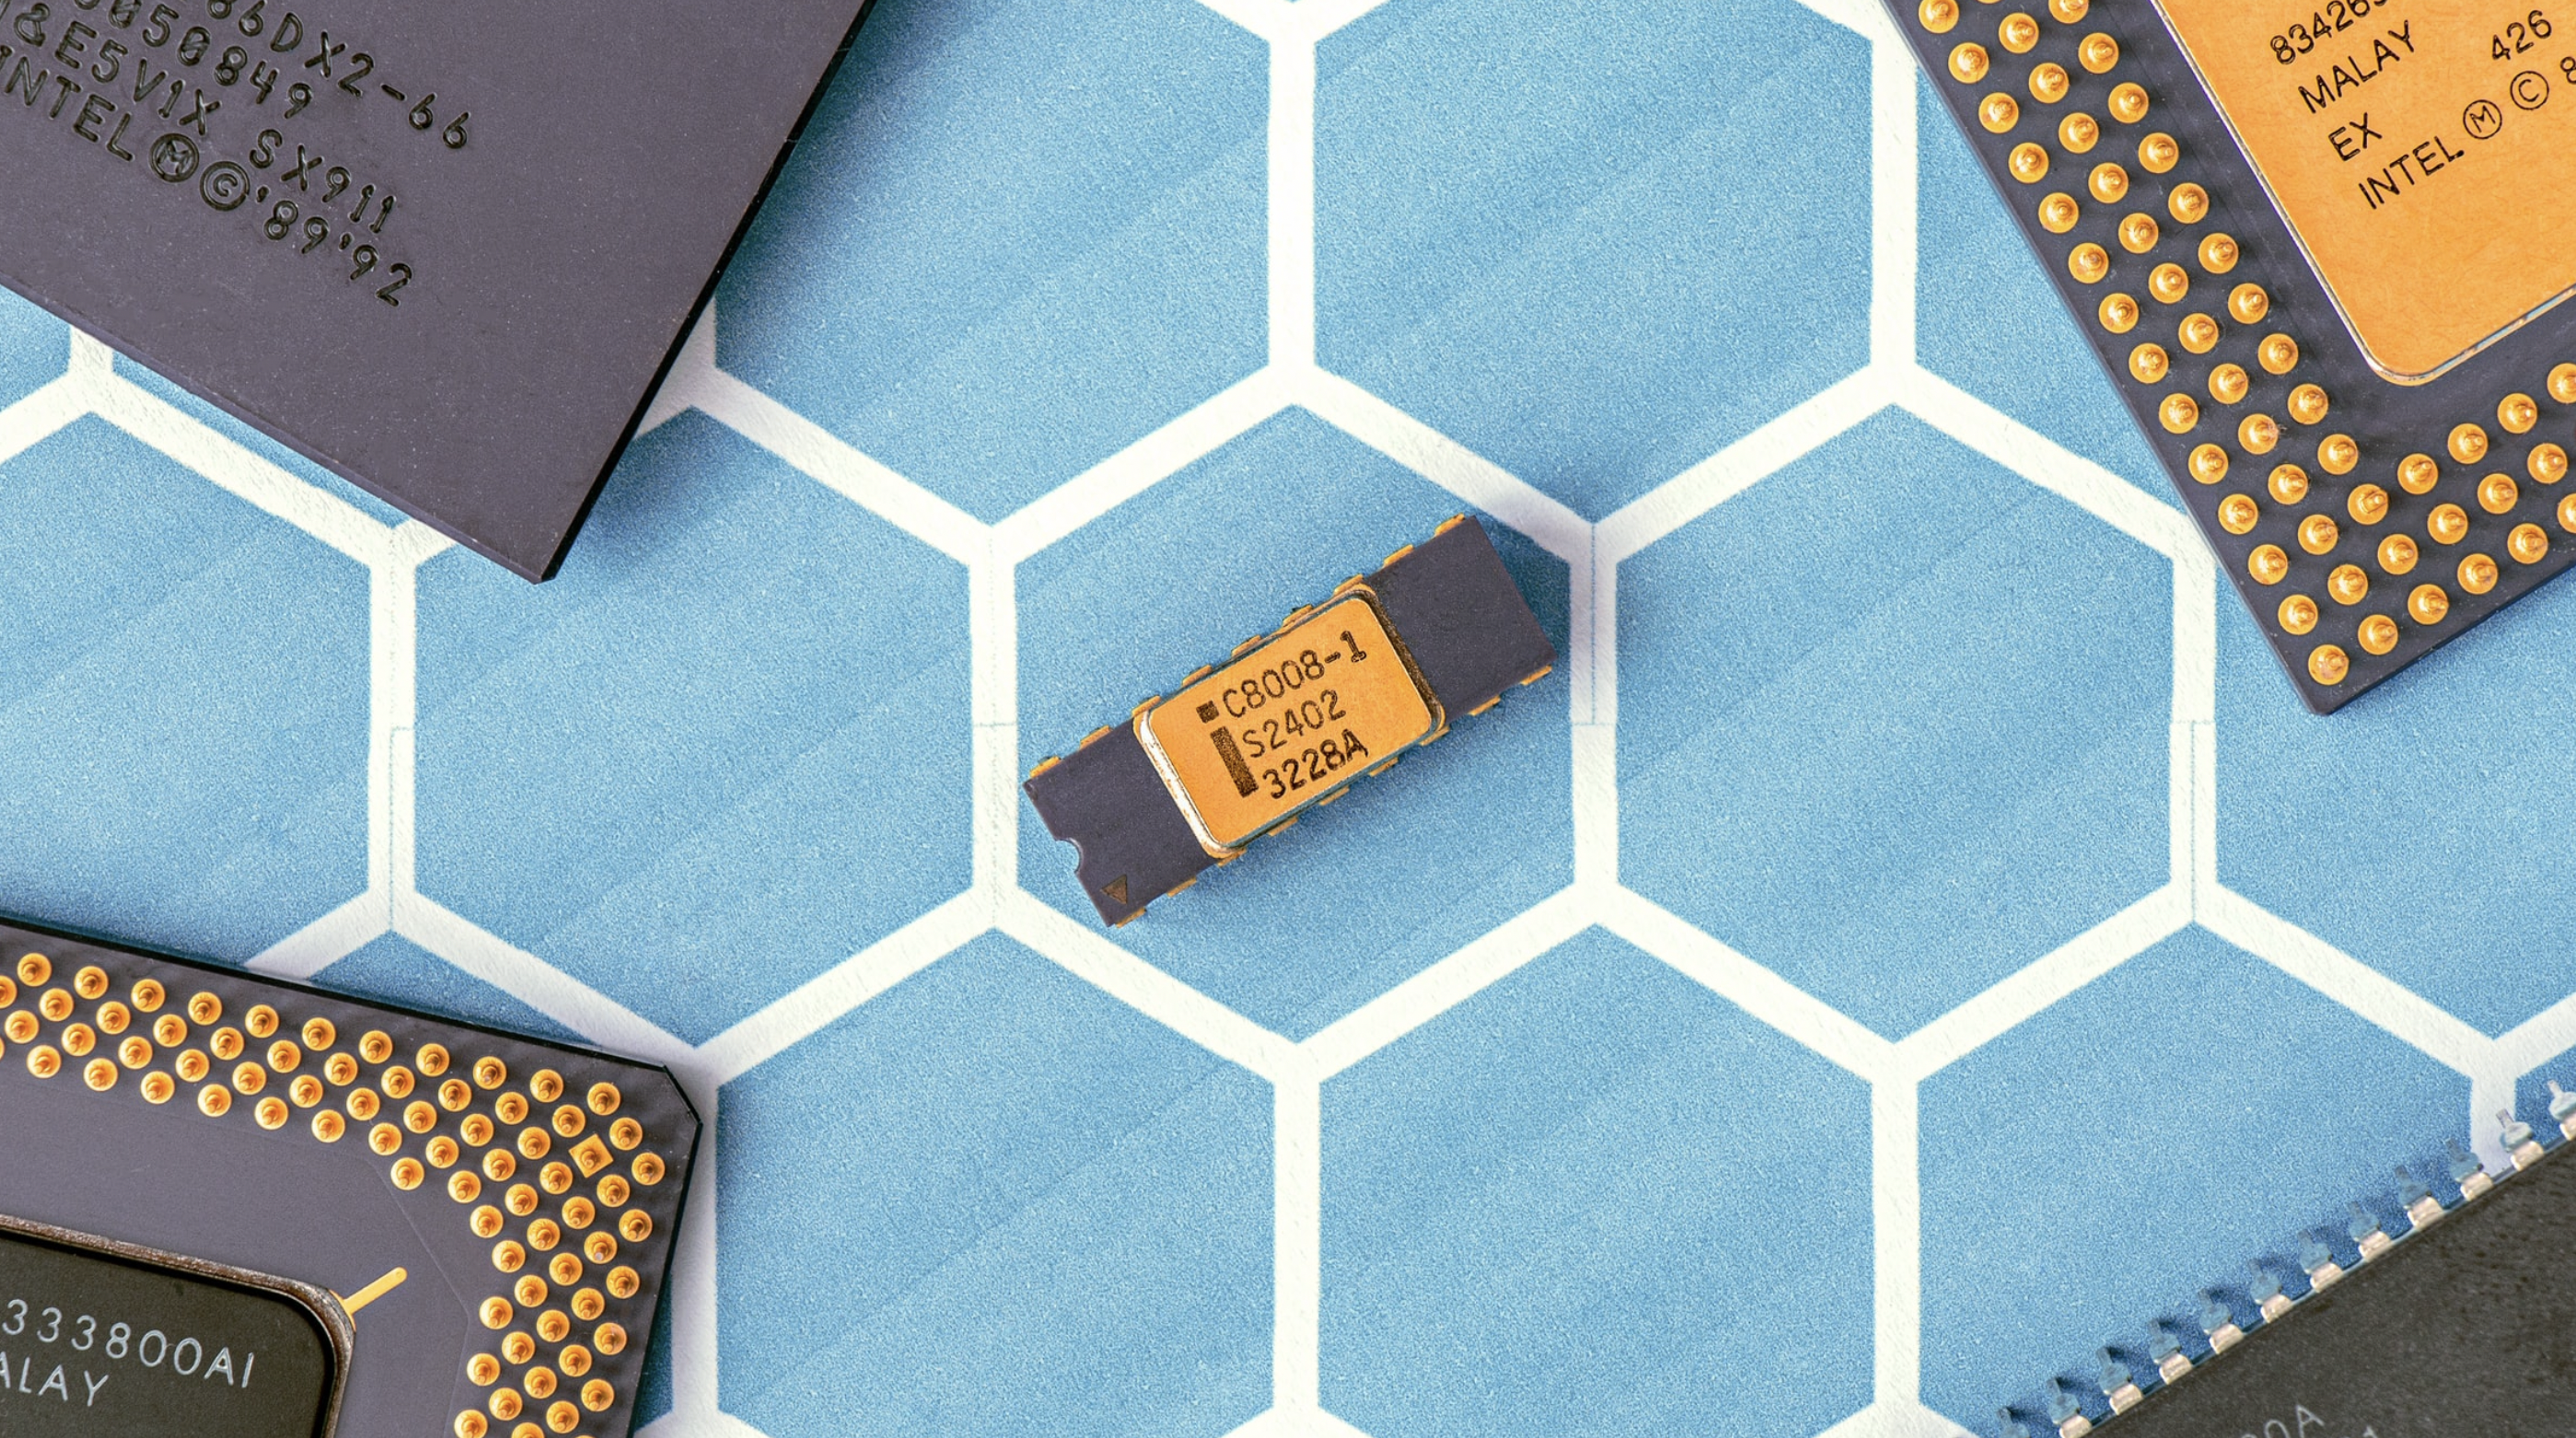 The Shortage of Semiconductors